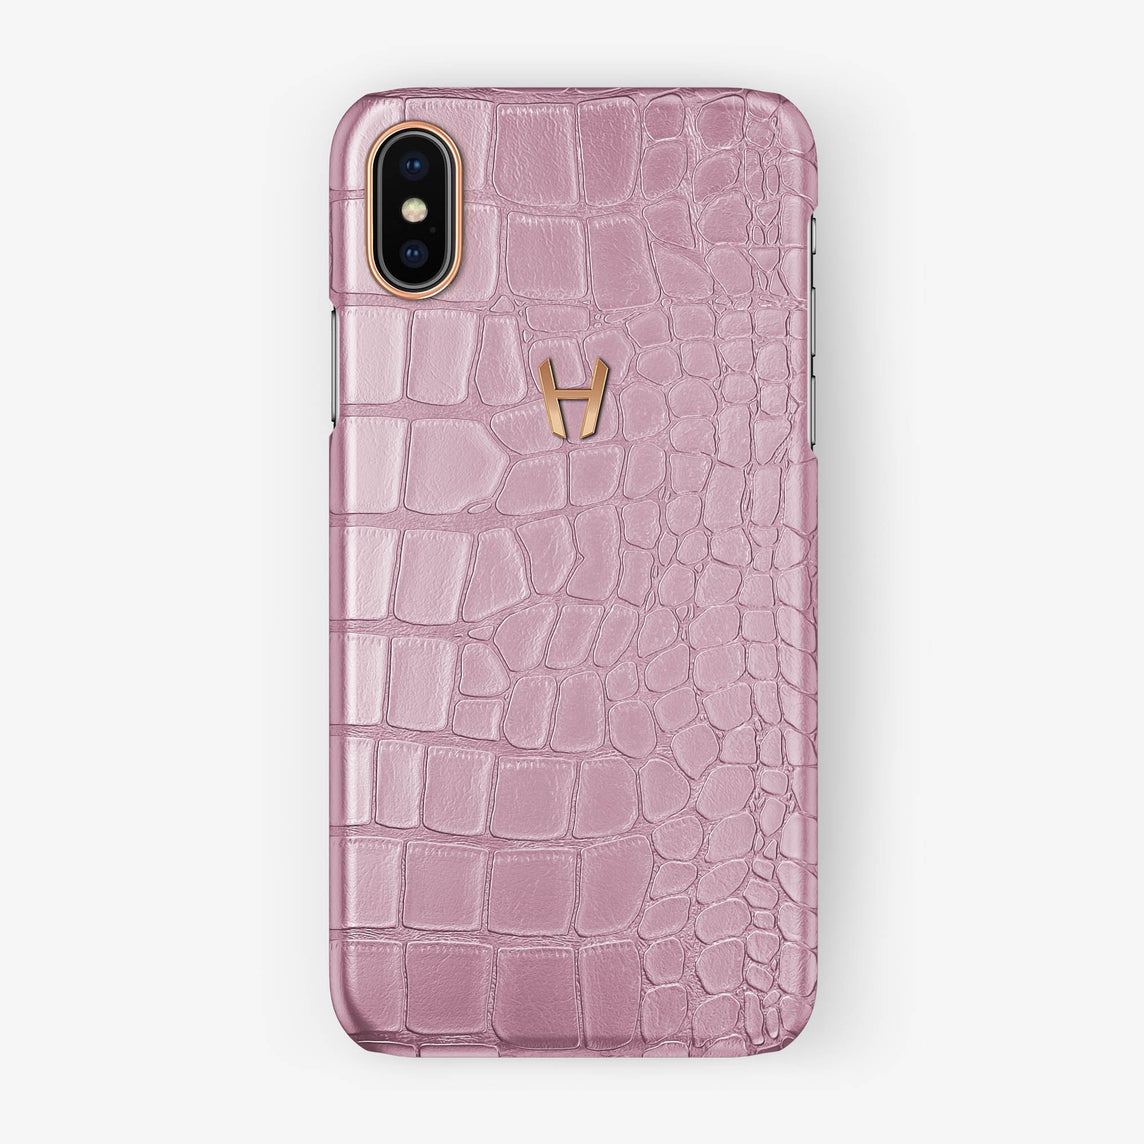 Alligator Case iPhone X/Xs | Pink - Rose Gold without-personalization